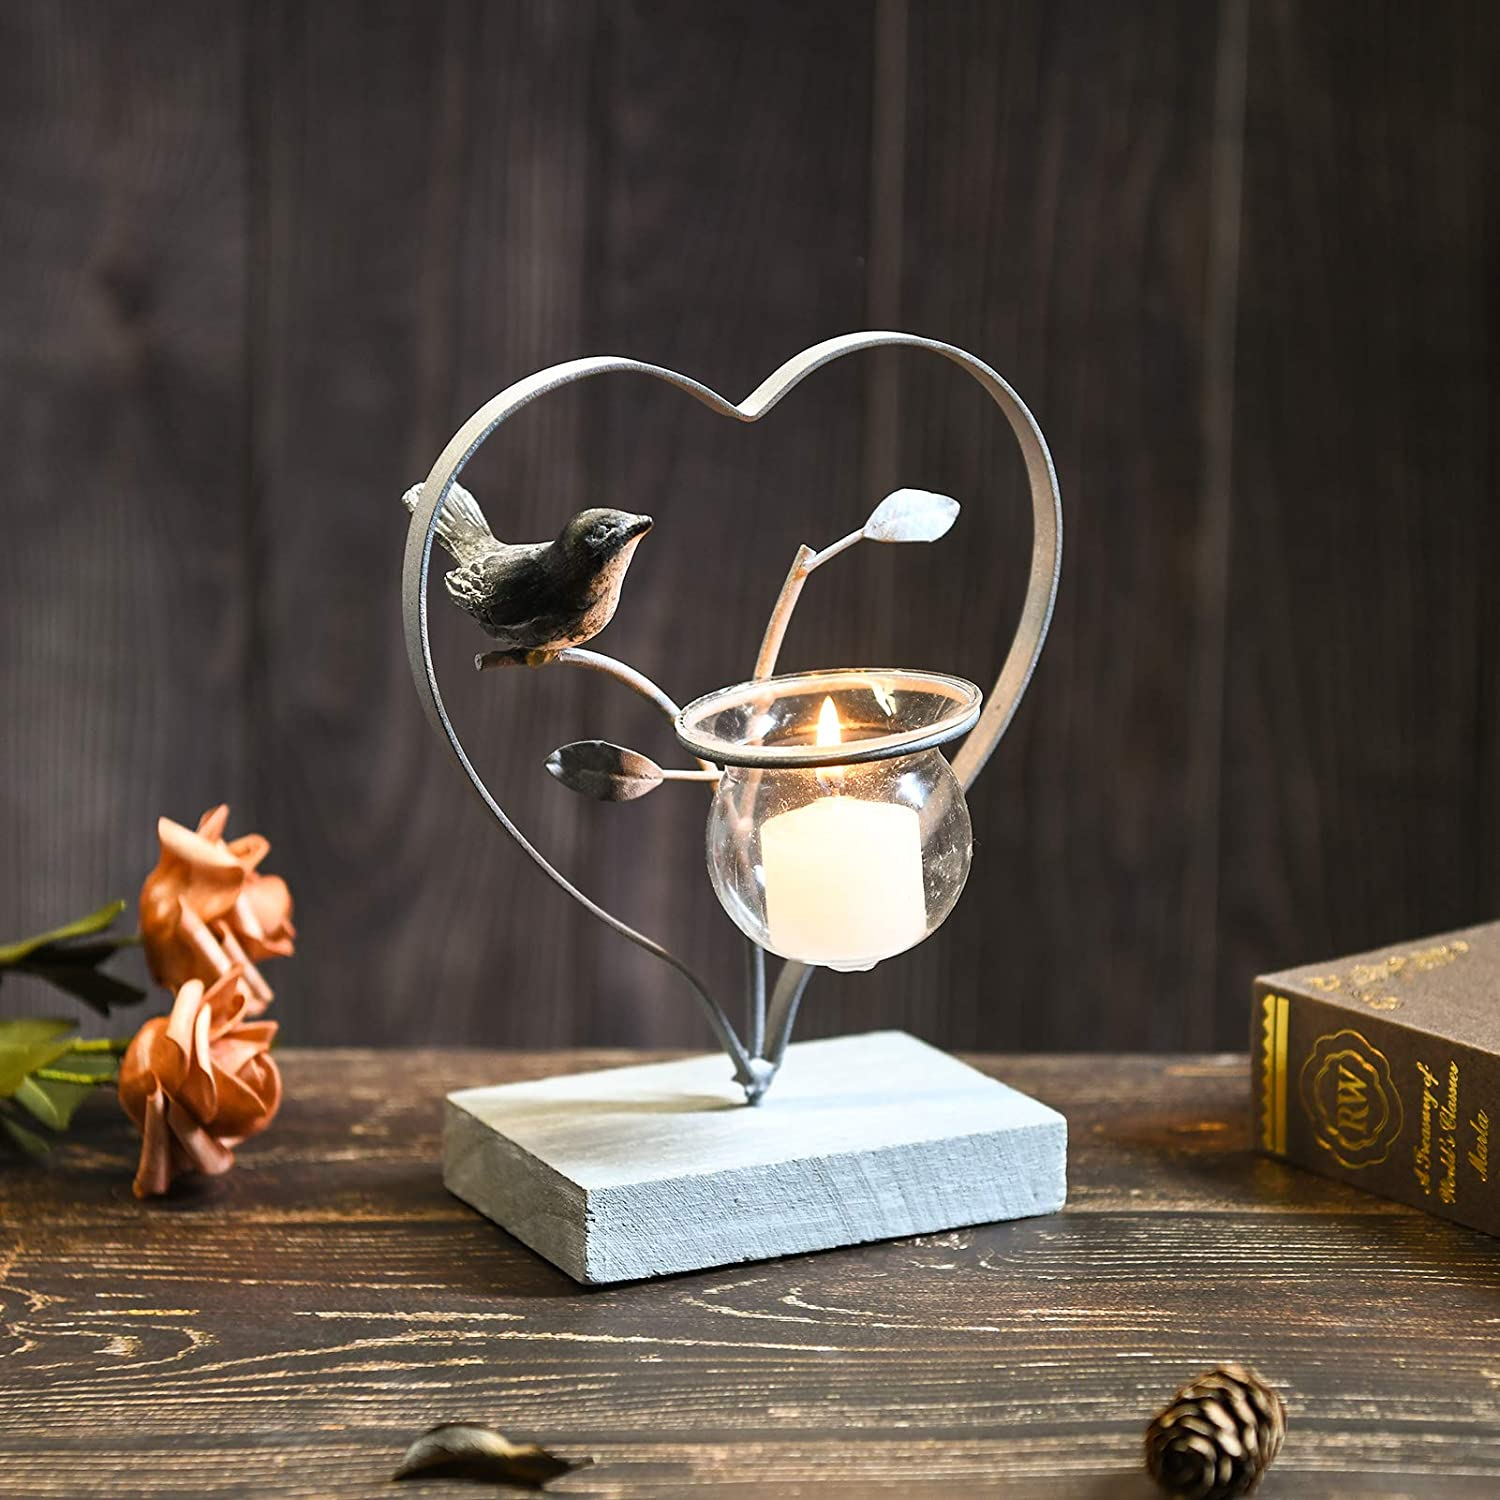 Marbrasse Votive Candle Holders, Vintage Home Decor Centerpiece, Iron Branches, Heart Shaped Resin Bird, Wood Base Tabletop Decorative TeaLight Candle Stands (Grey)